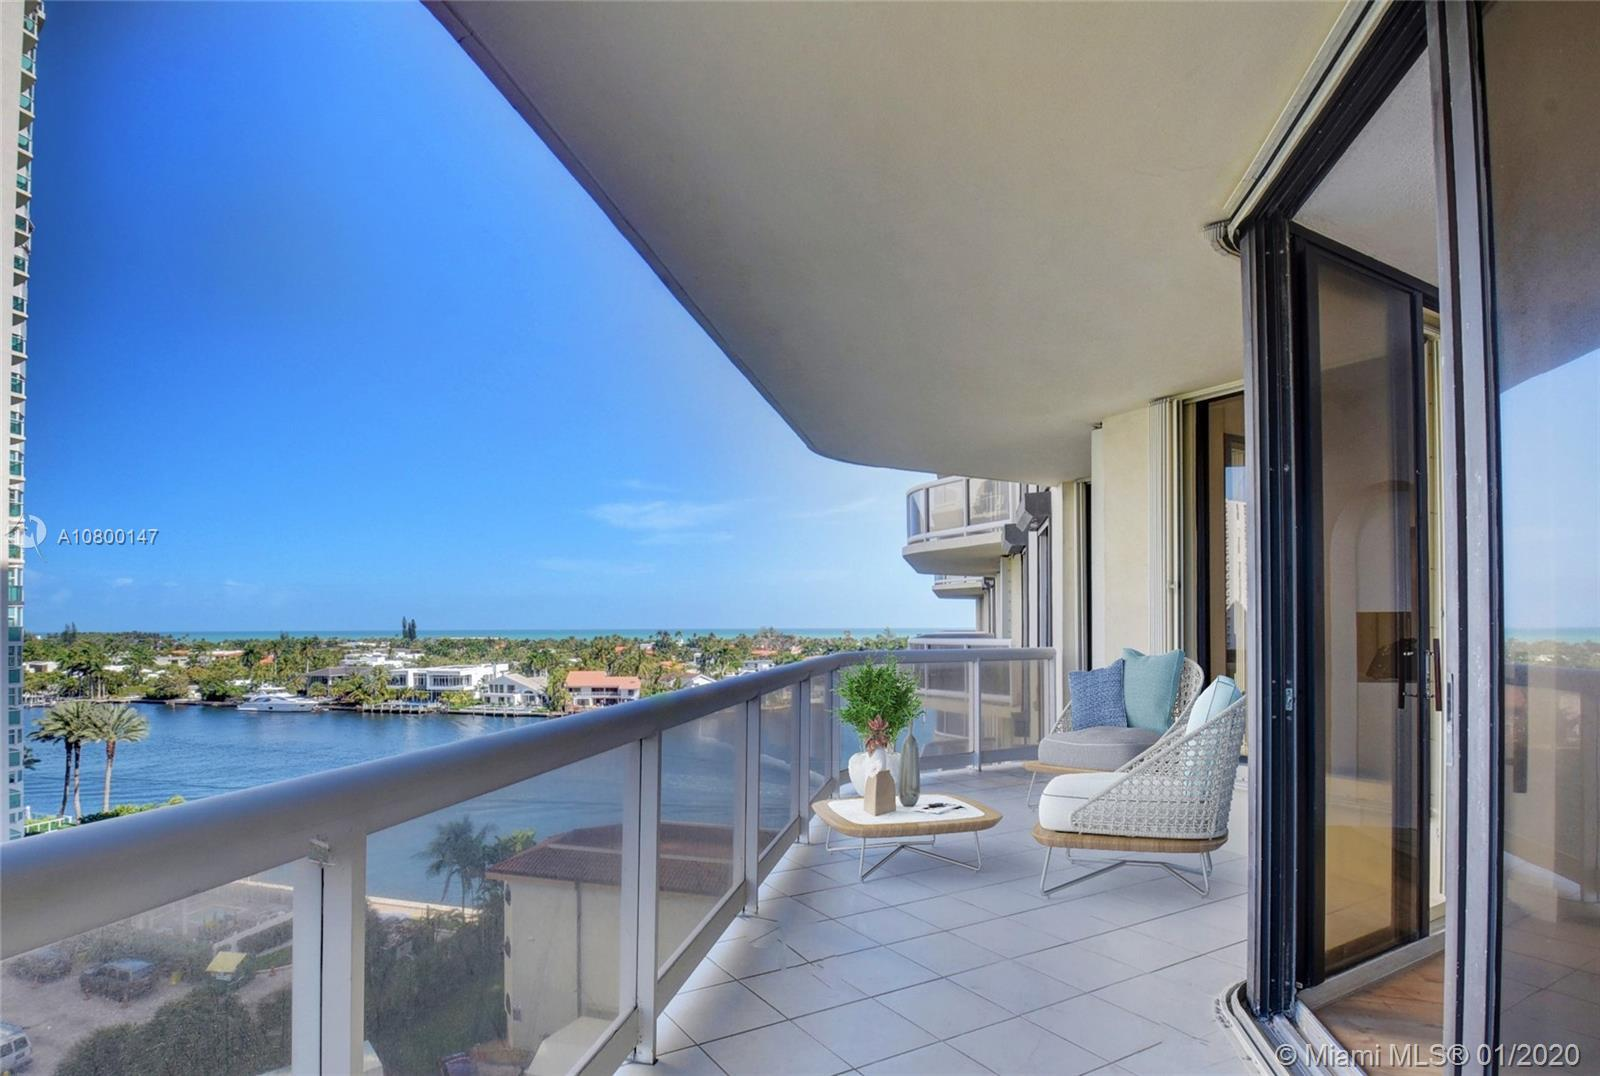 Remodeled 2/2 corner unit 1460 Sq. ft. Located at Terraces at Turnberry,tastefully decorated with la